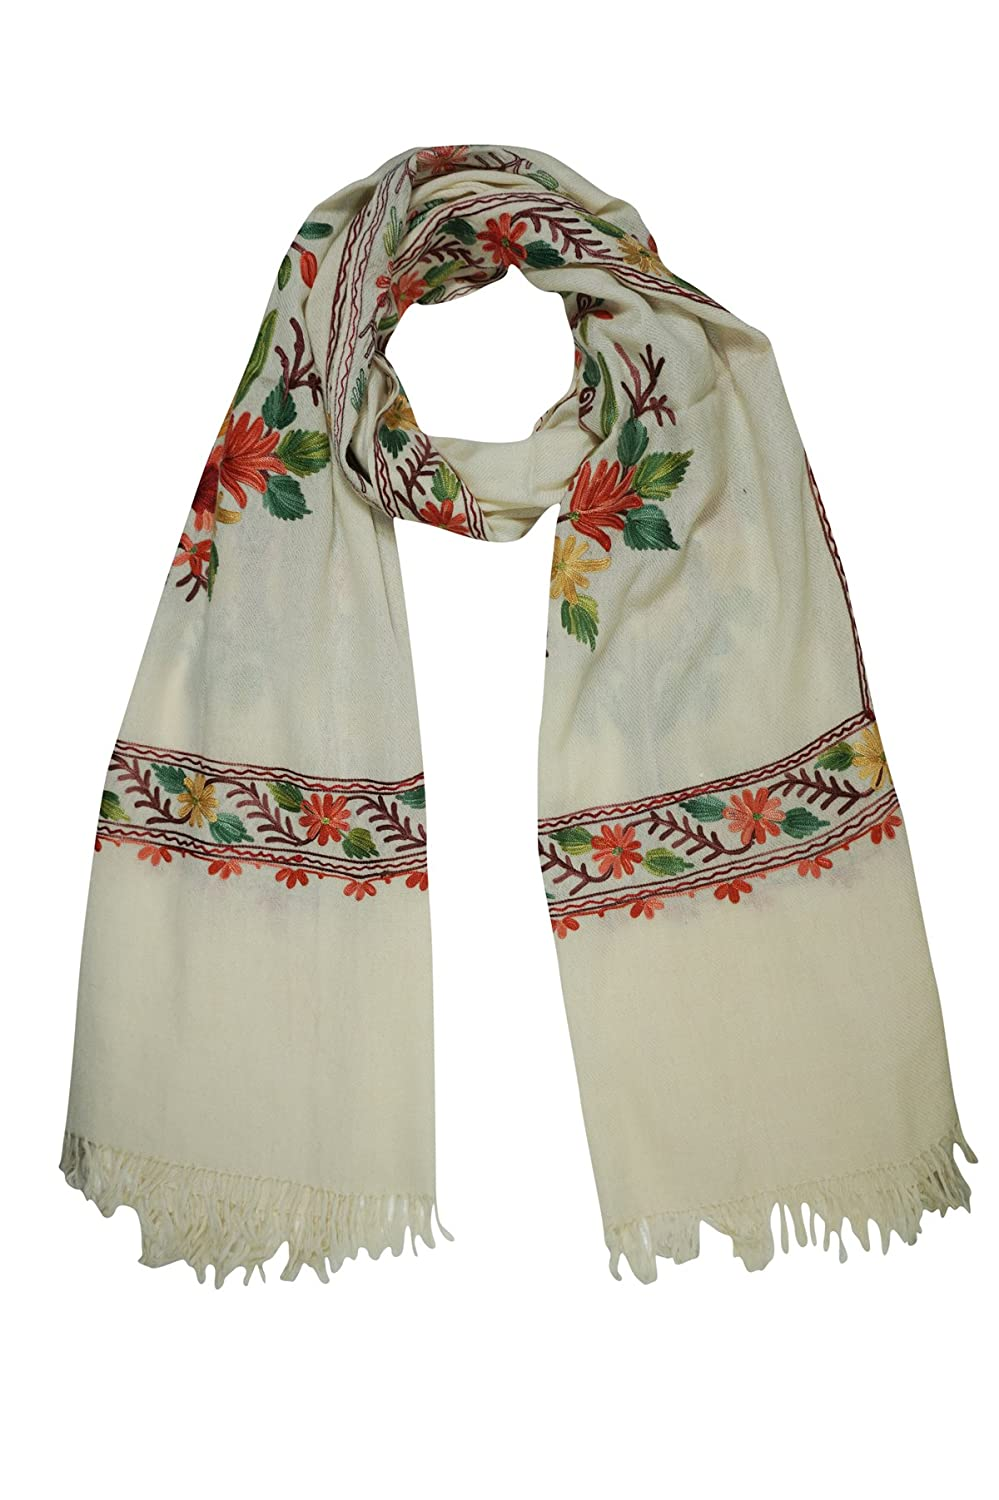 Luxurious Hand Embroidered Shawl Scarf Stole Wrap Fine Kashmiri Wool white Ivory